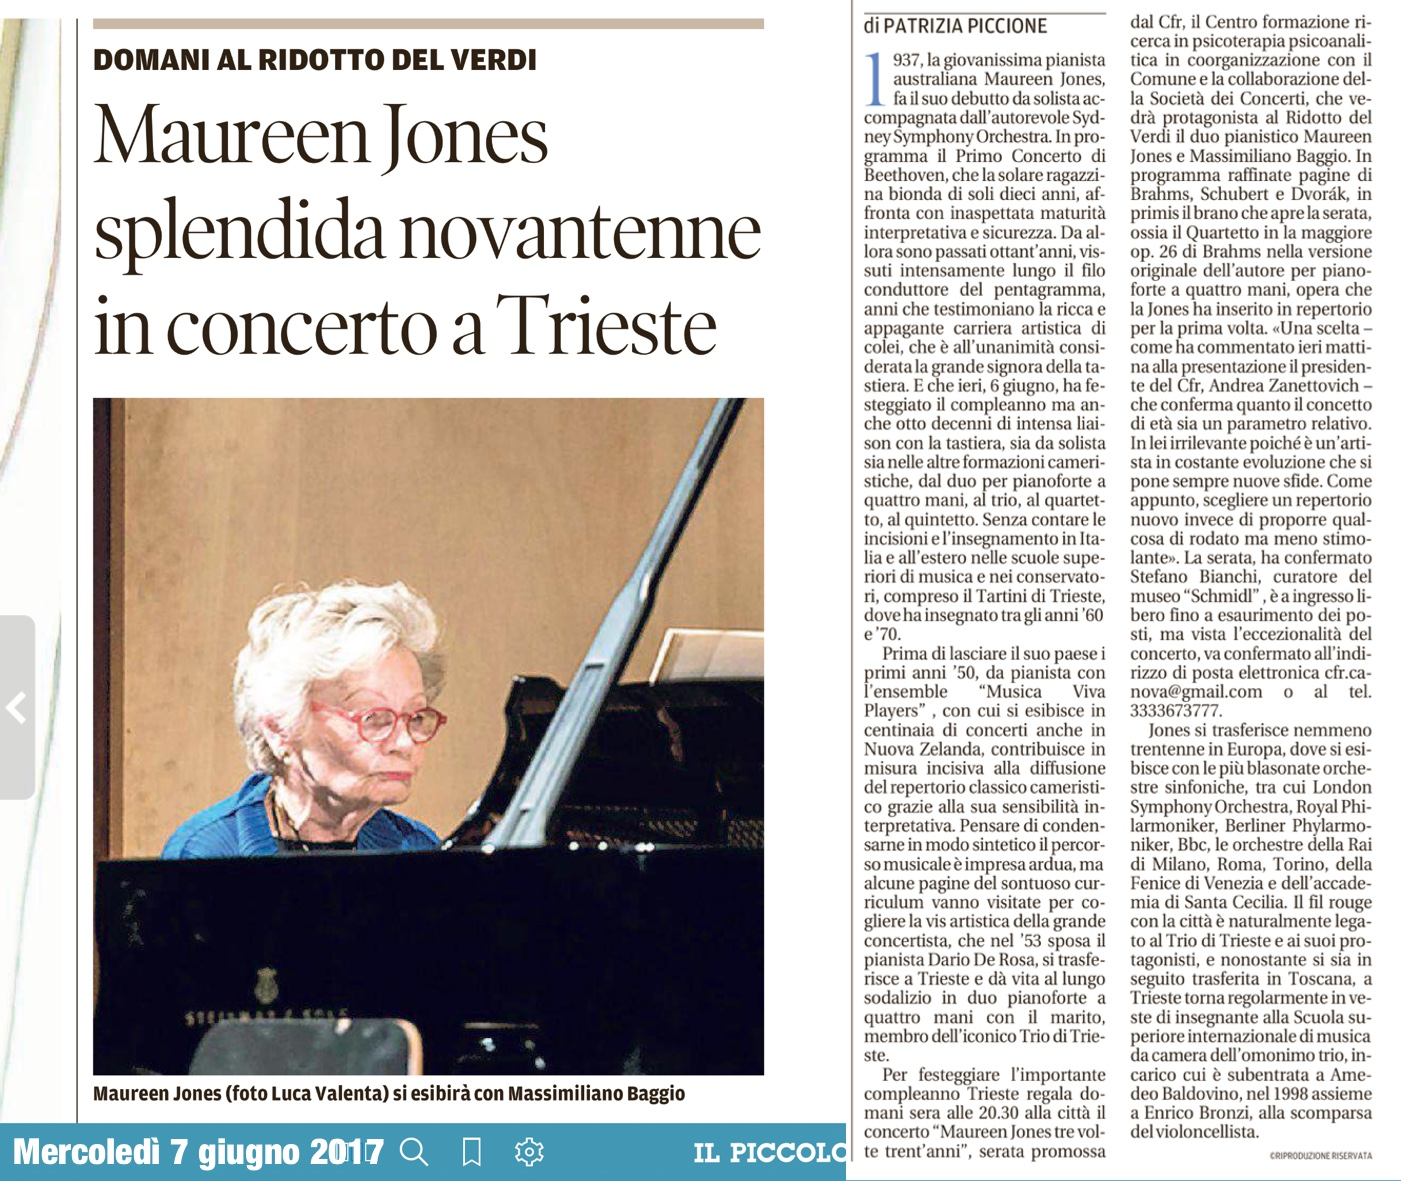 Piccolo_Maureen_Jones_2017